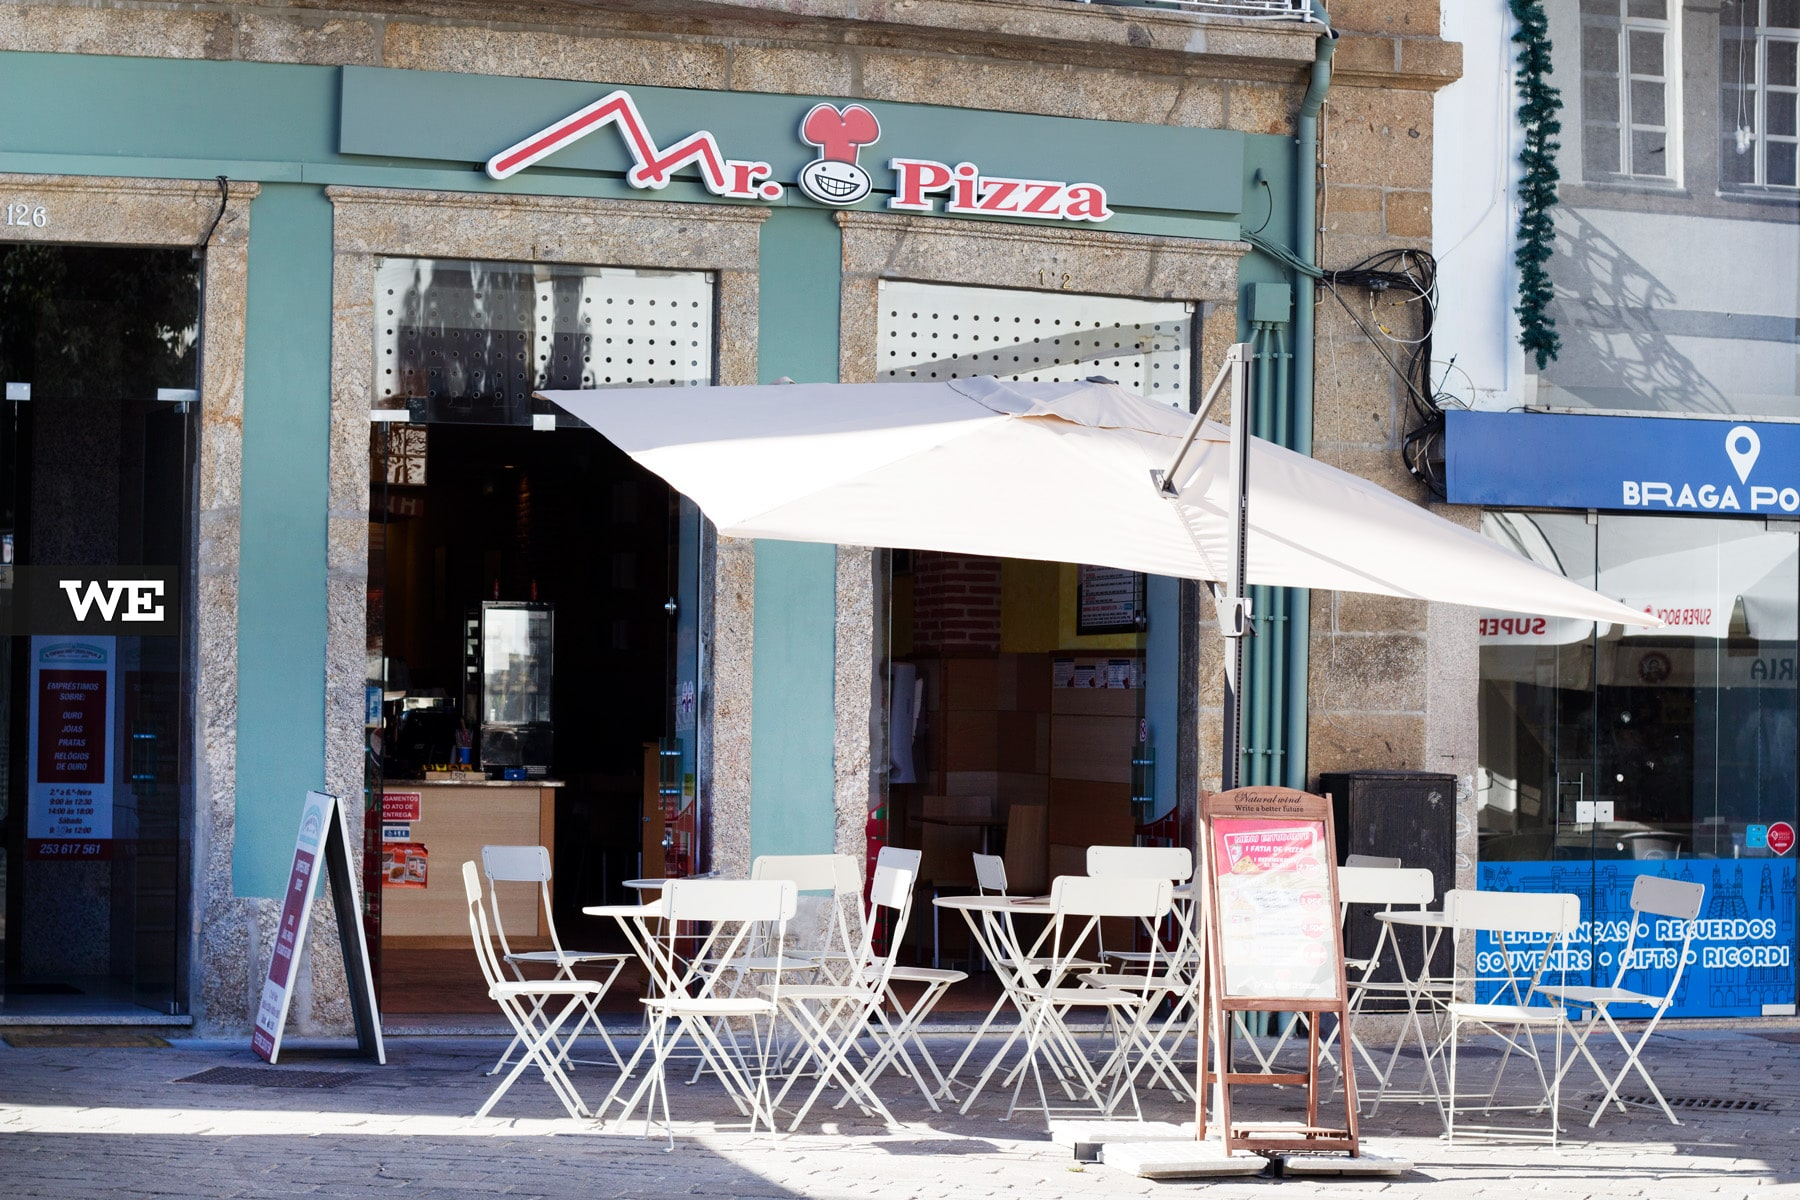 Mr. Pizza Pizzarias Braga